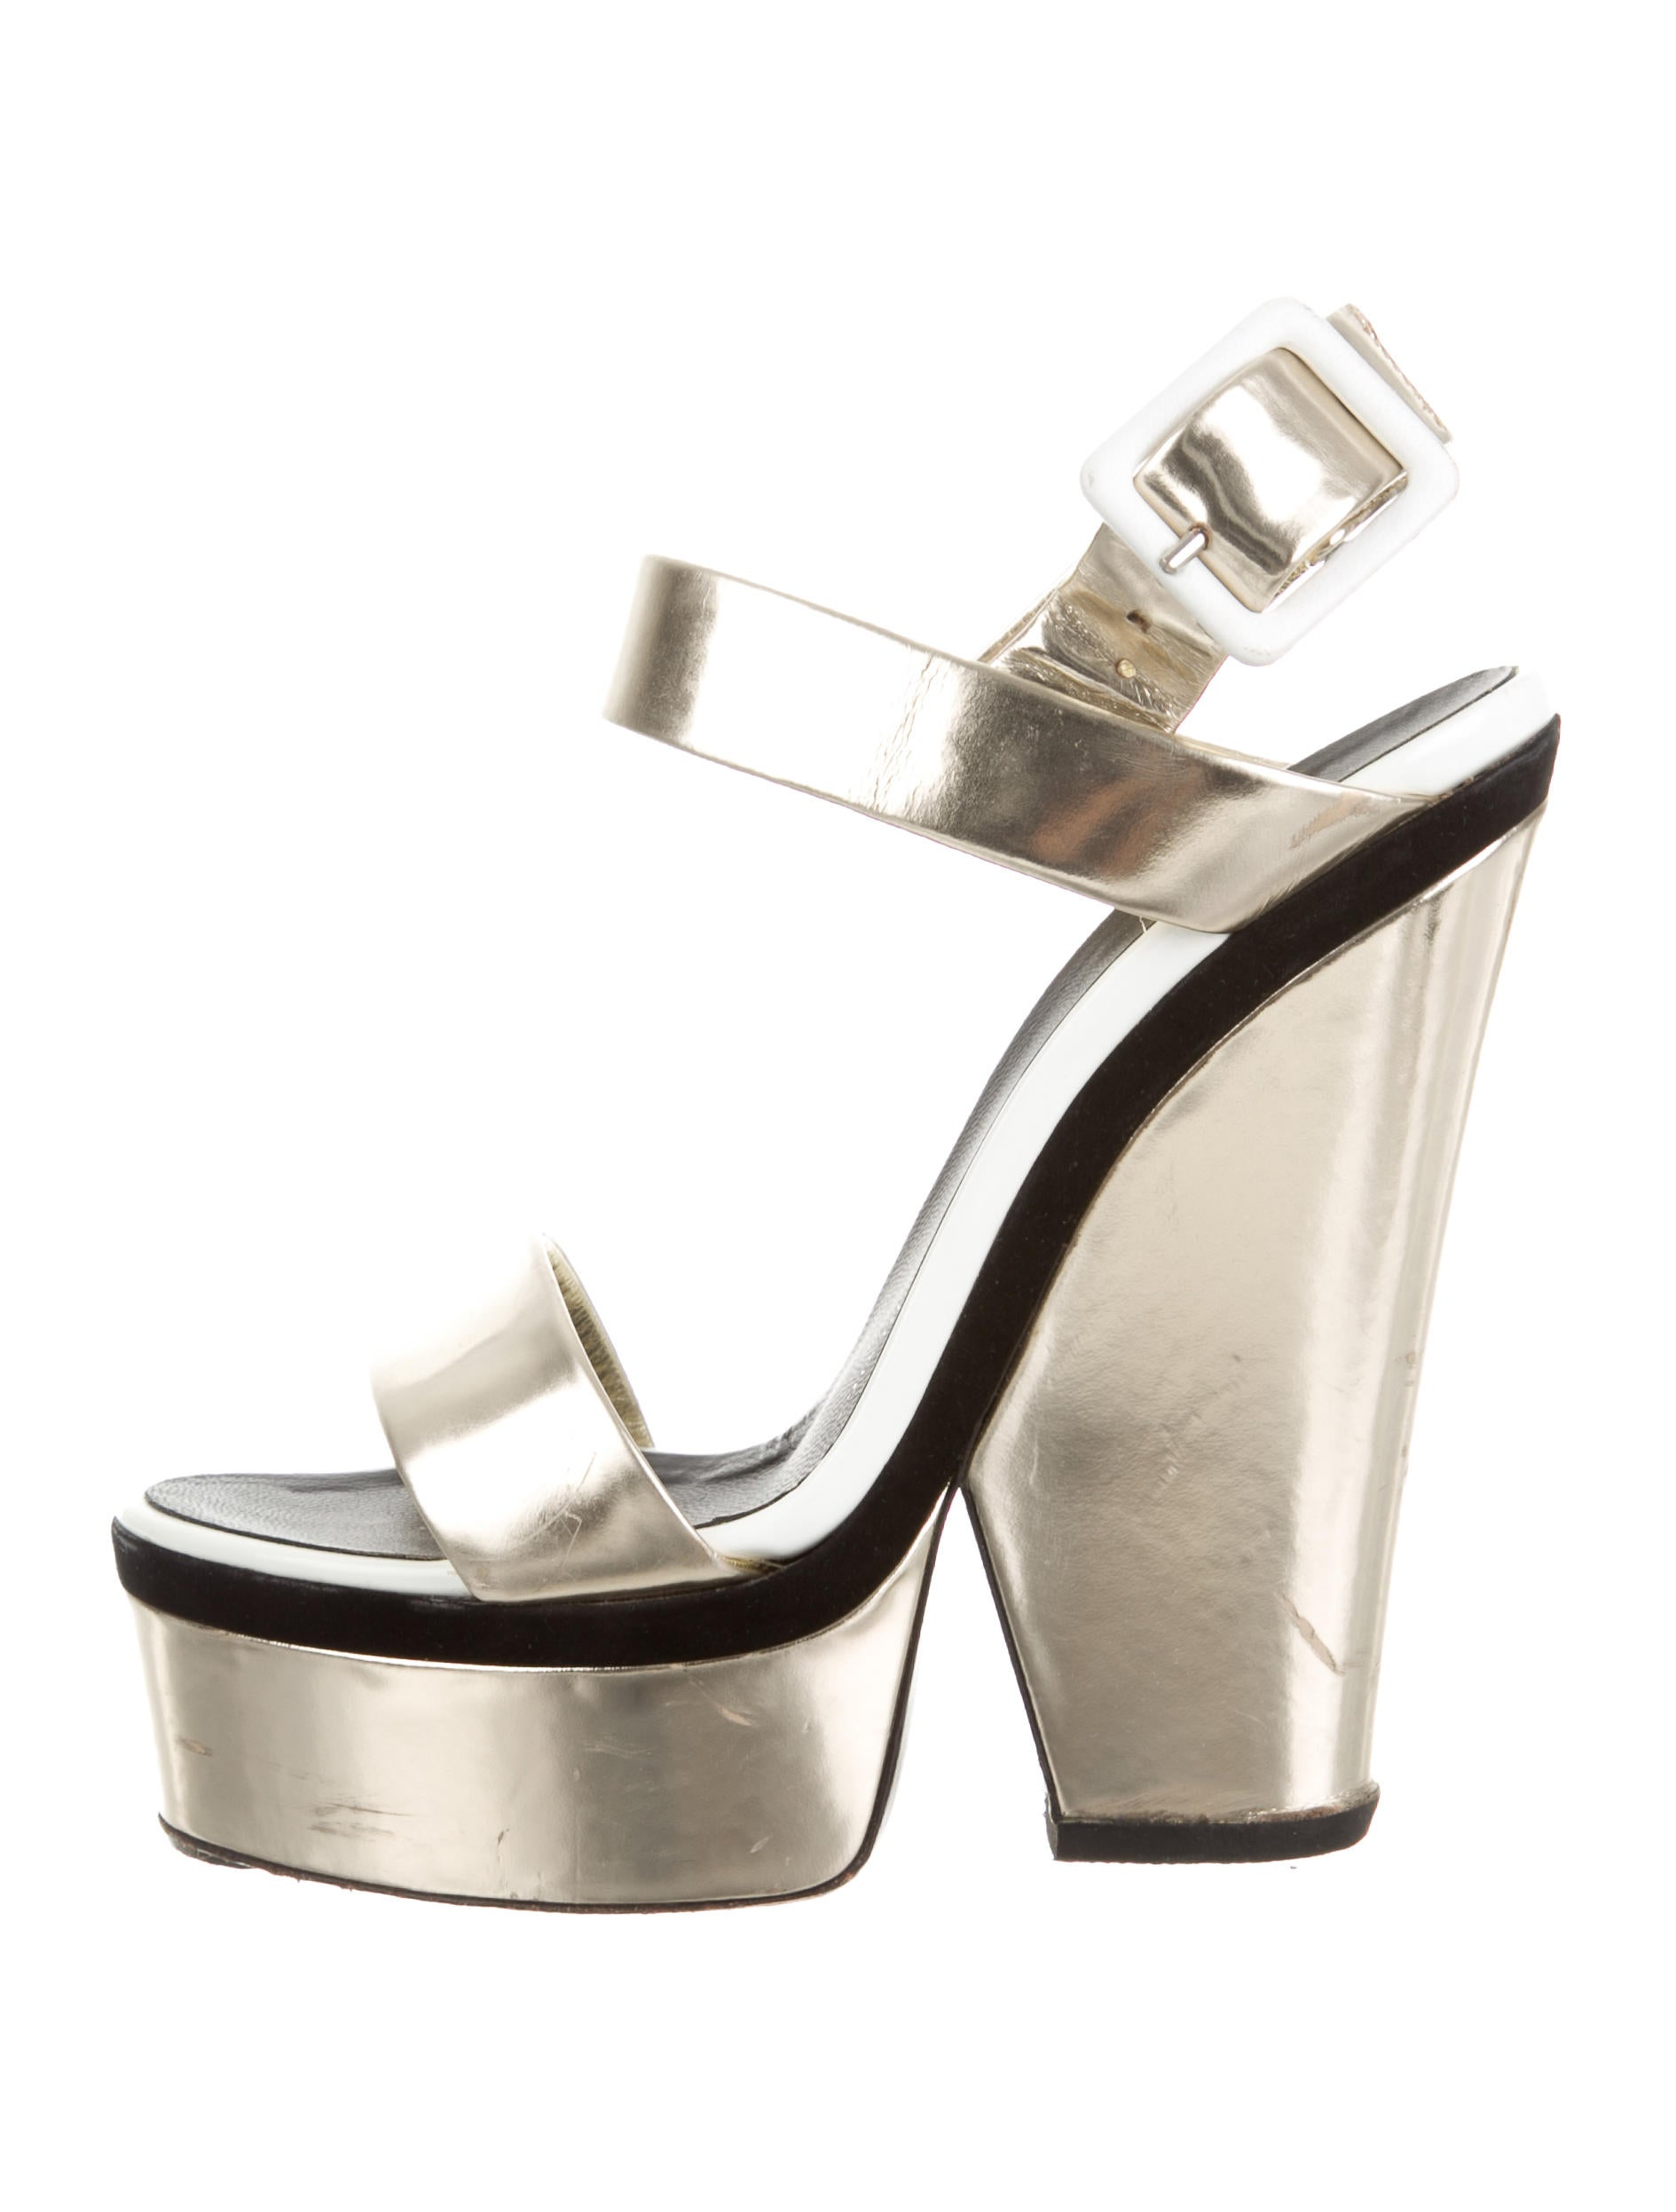 giuseppe zanotti metallic platform sandals shoes